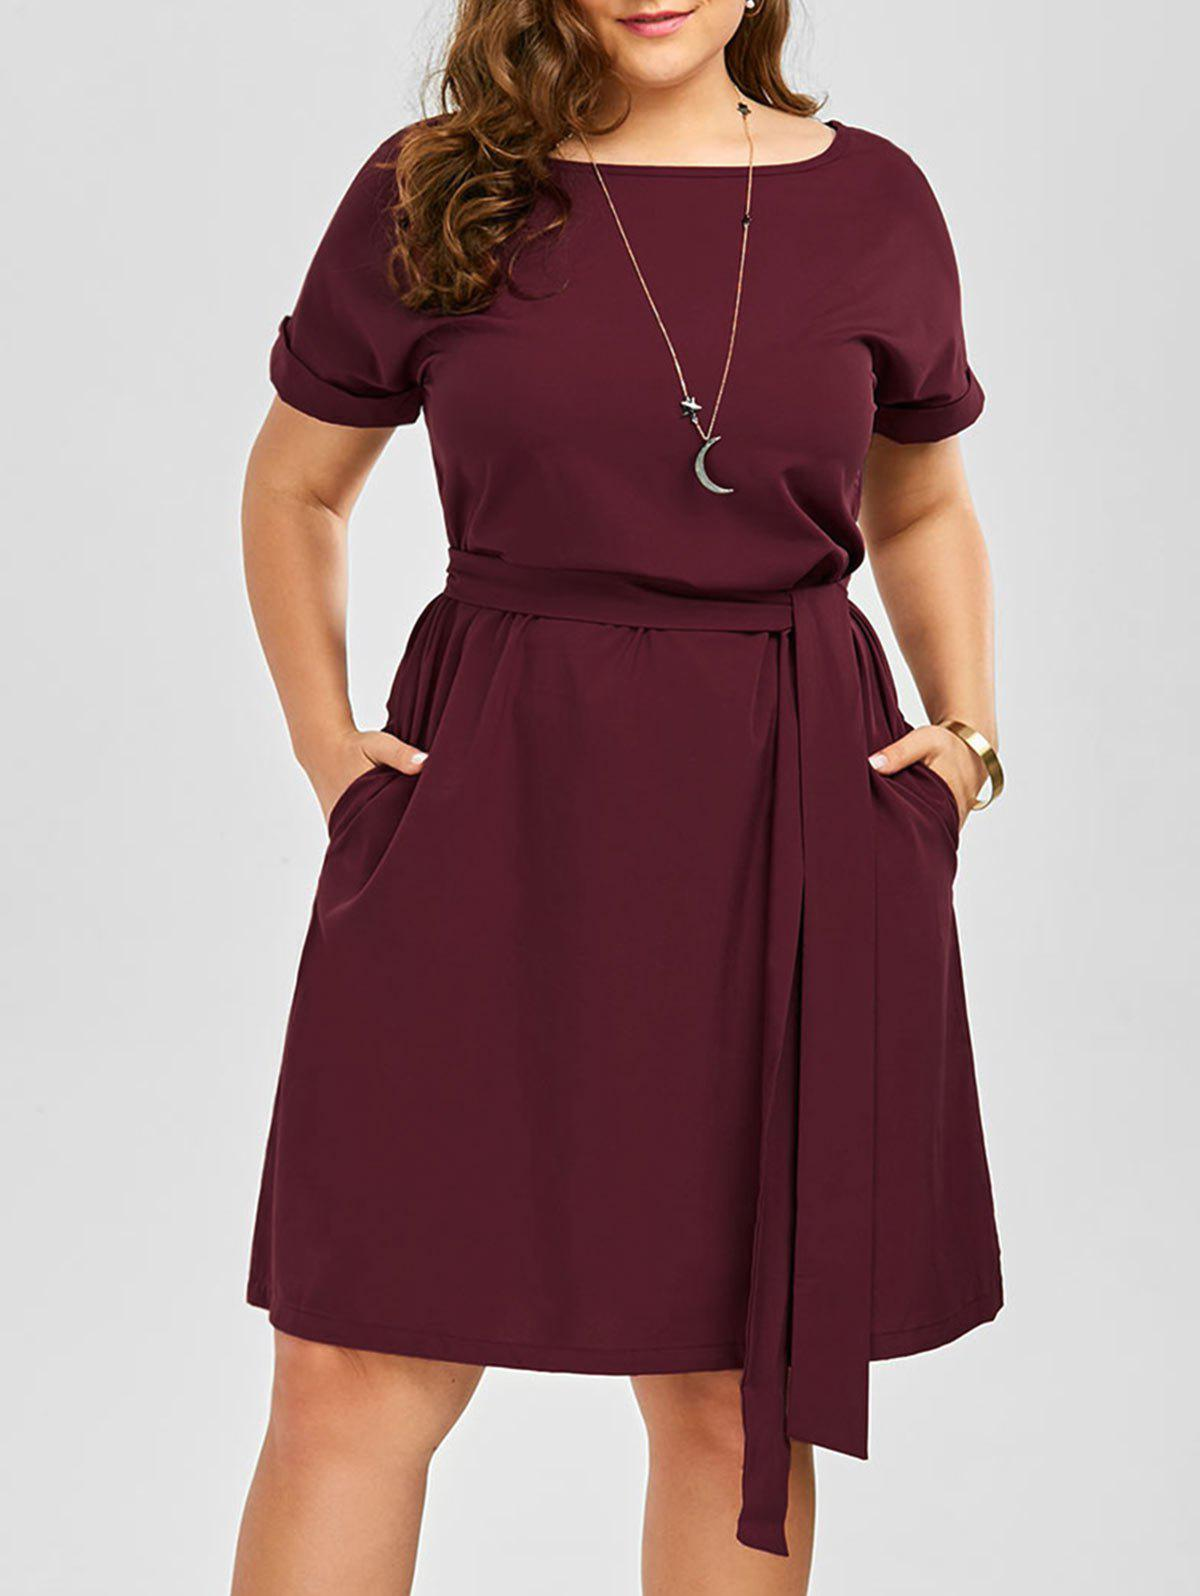 37% OFF] Plus Size Belted Knee Length A Line Dress With Pocket | Rosegal